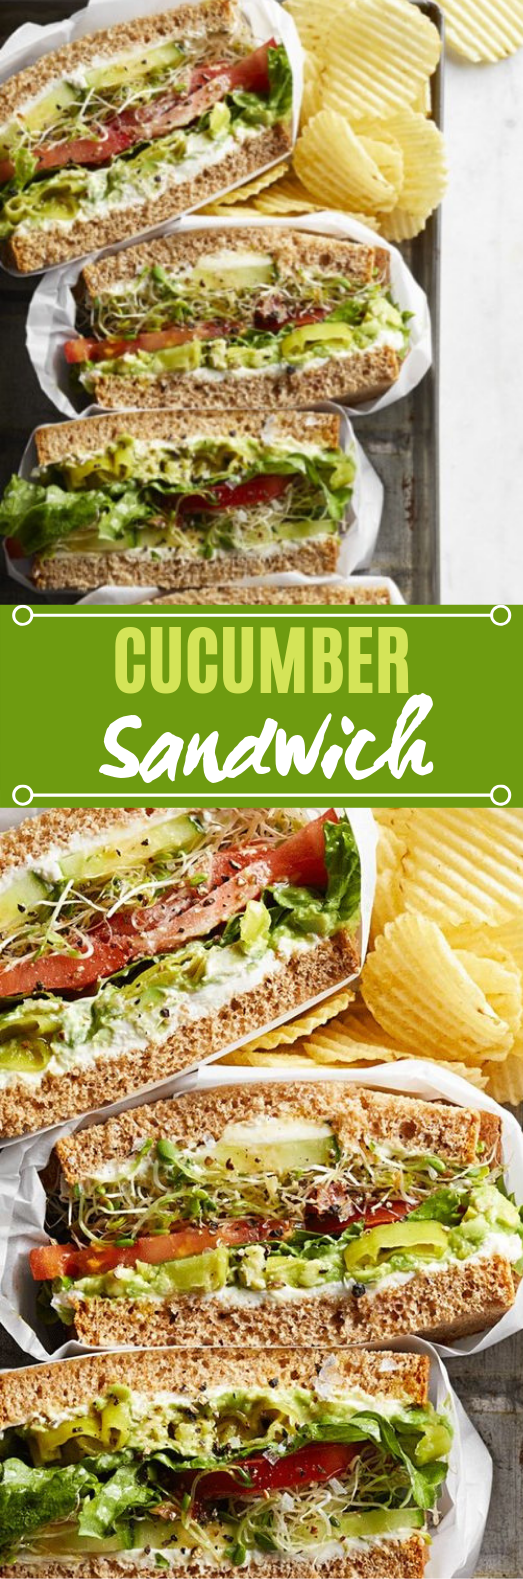 Cucumber Sandwich #lunch #vegetarian